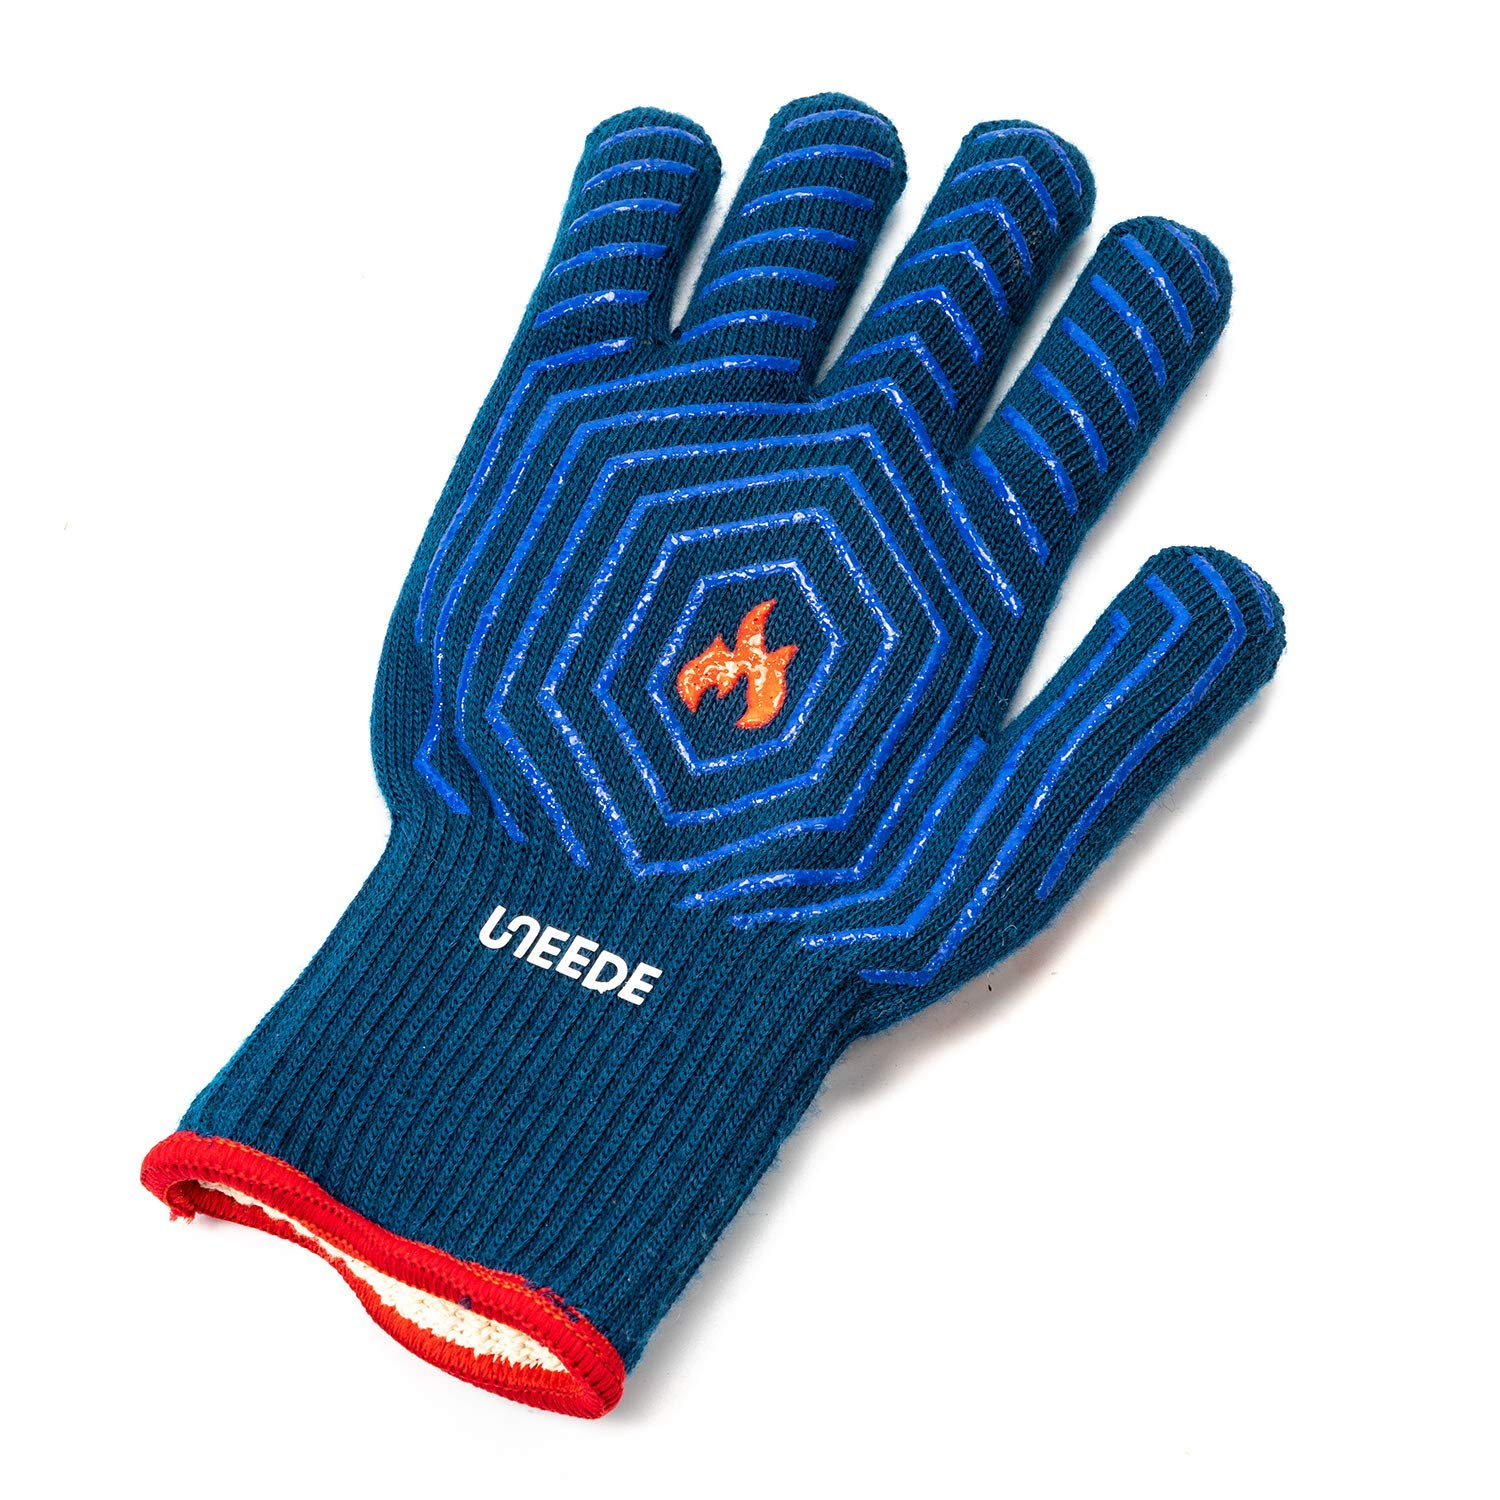 UNEEDE Extreme Heat Resistant Grill/BBQ Gloves | Premium Insulated Durable Fireproof Kitchen Mitts Designed for Cooking, Grilling, Frying, Baking | Indoor/Outdoor Accessories for Men & Women